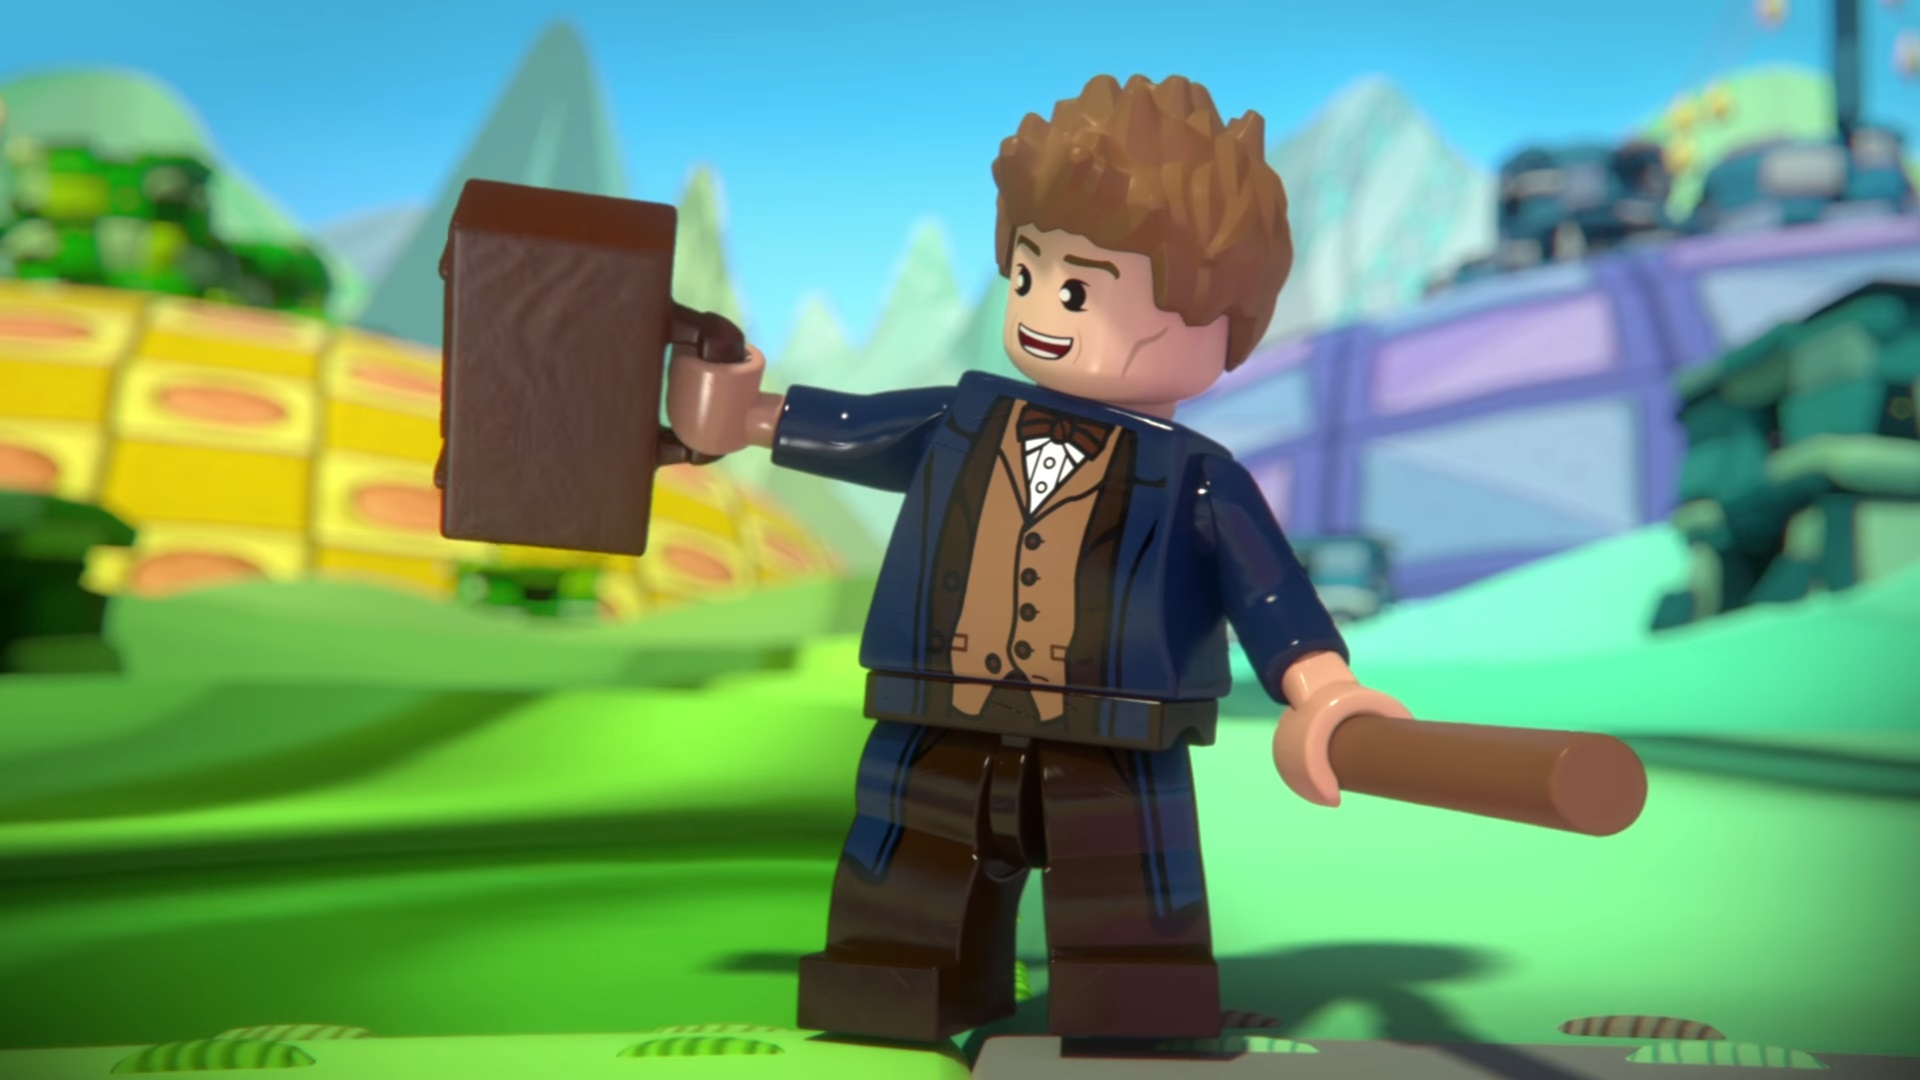 lego-dimensions-phase-2-newt-scamander-fantastic-beasts